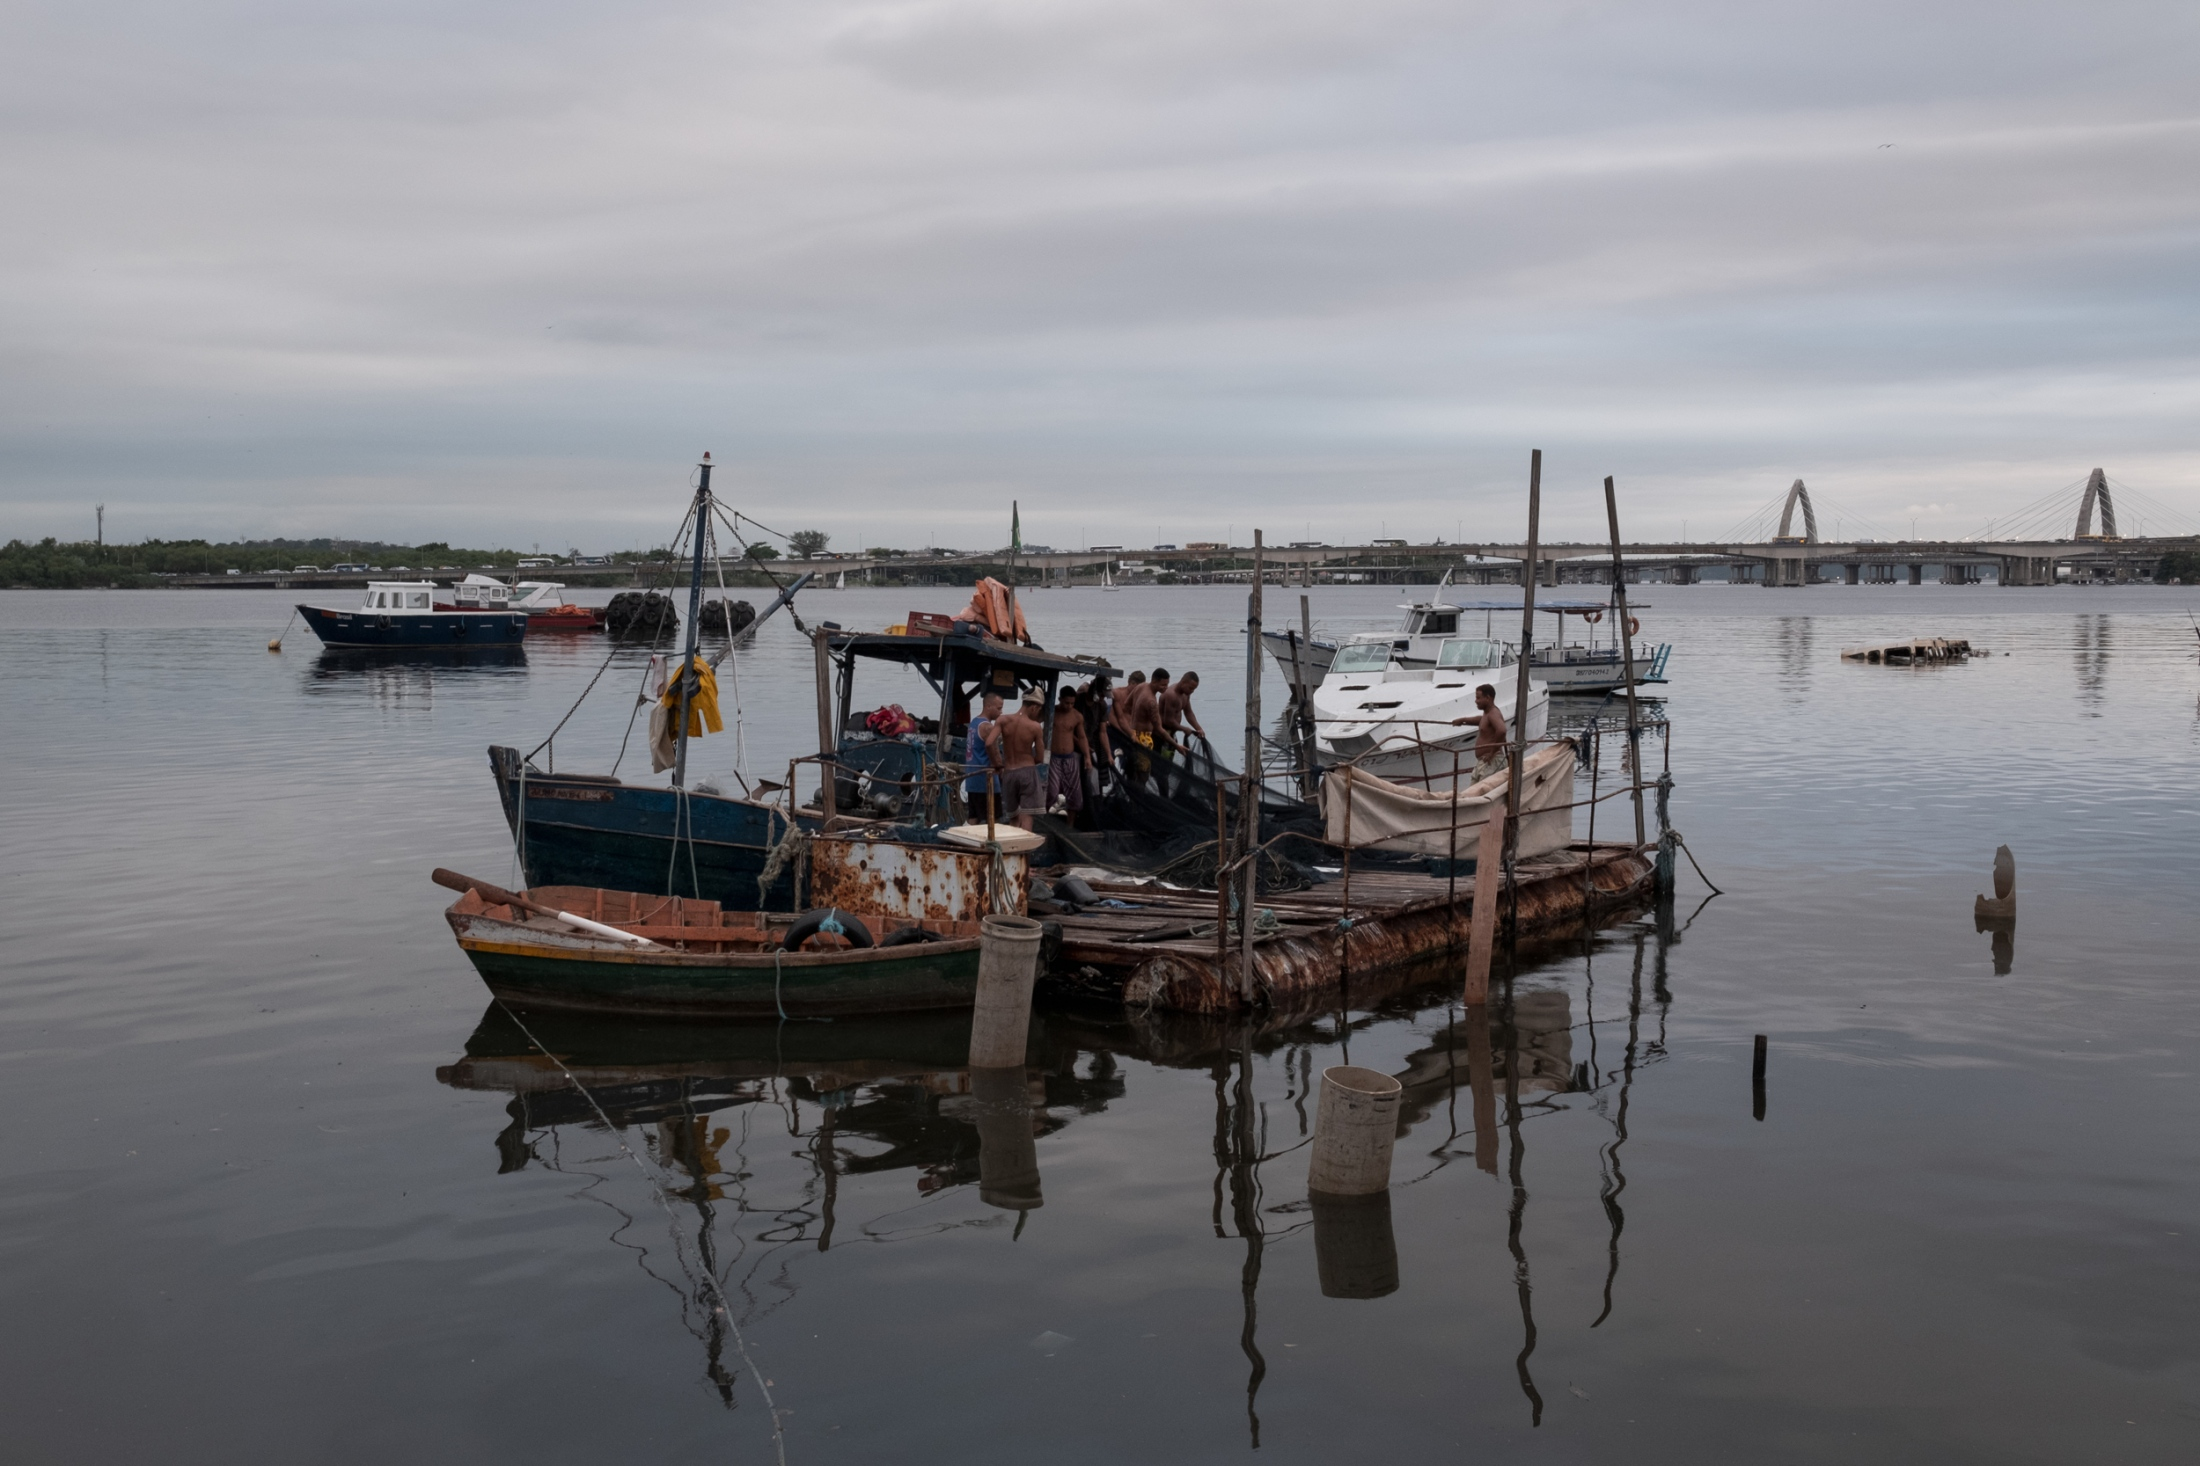 Luis' boat being prepared in its moorings for another night of fishing.